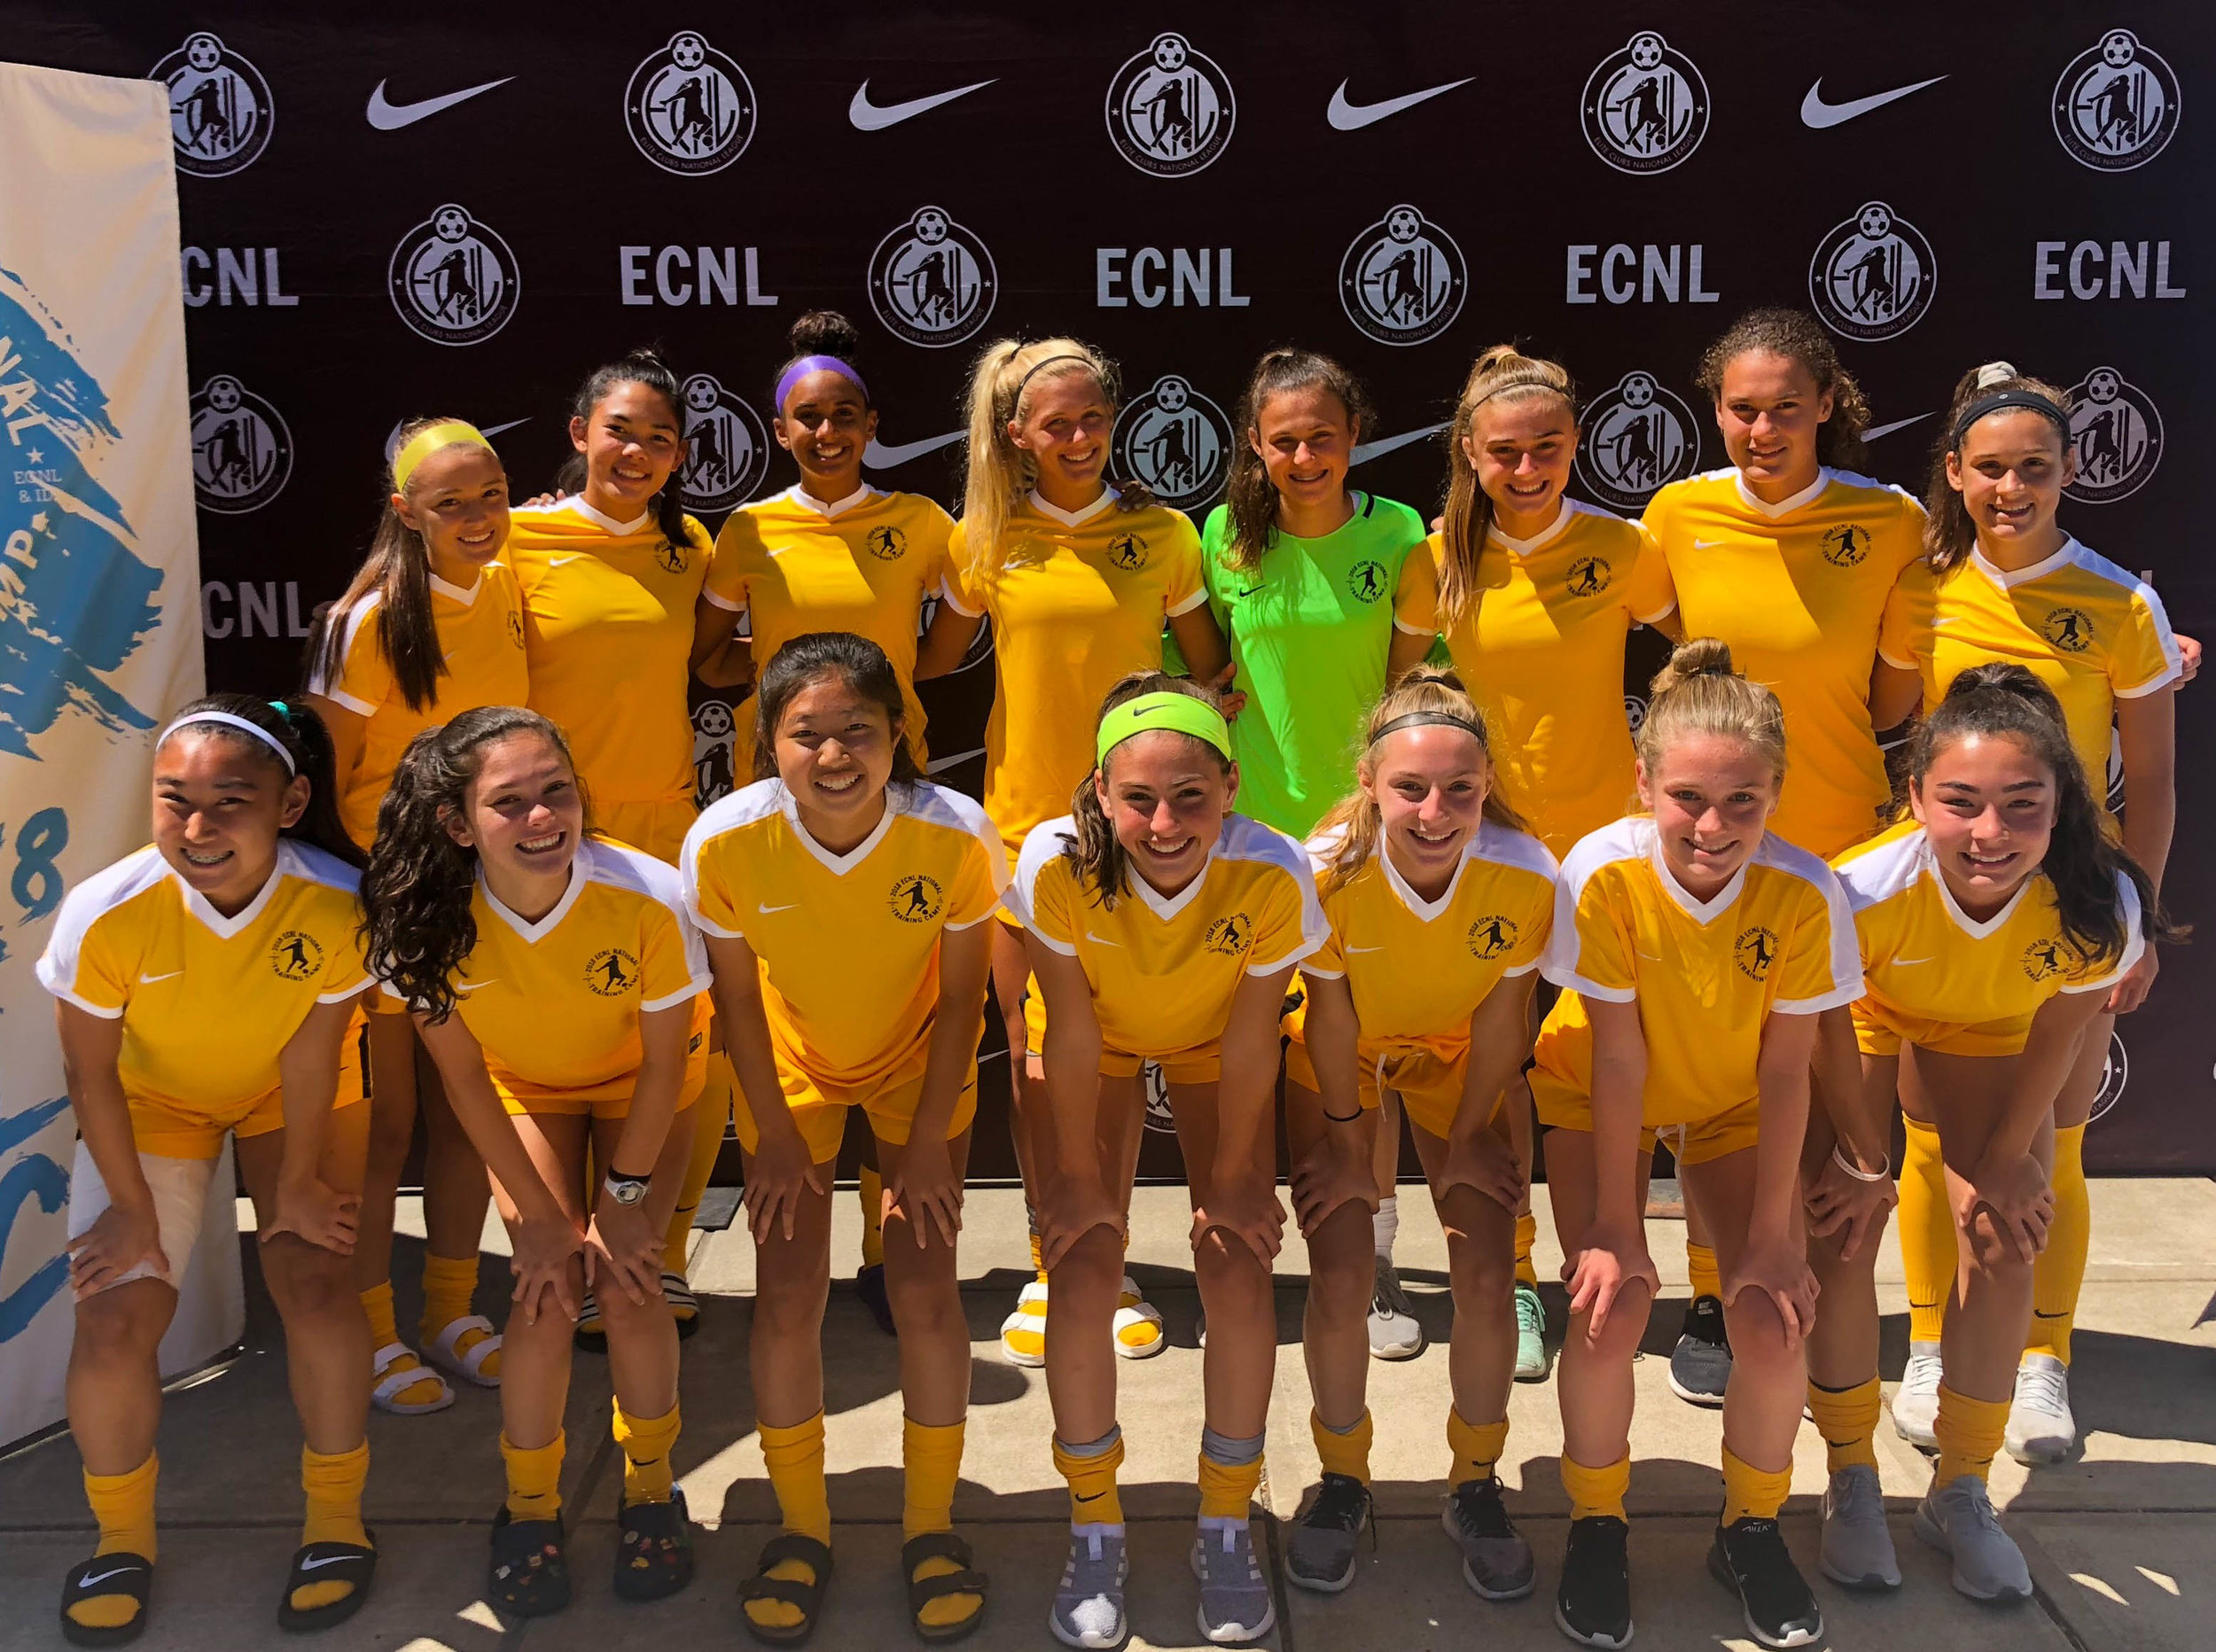 ECNL/ID² NATIONAL SELECTION TEAM